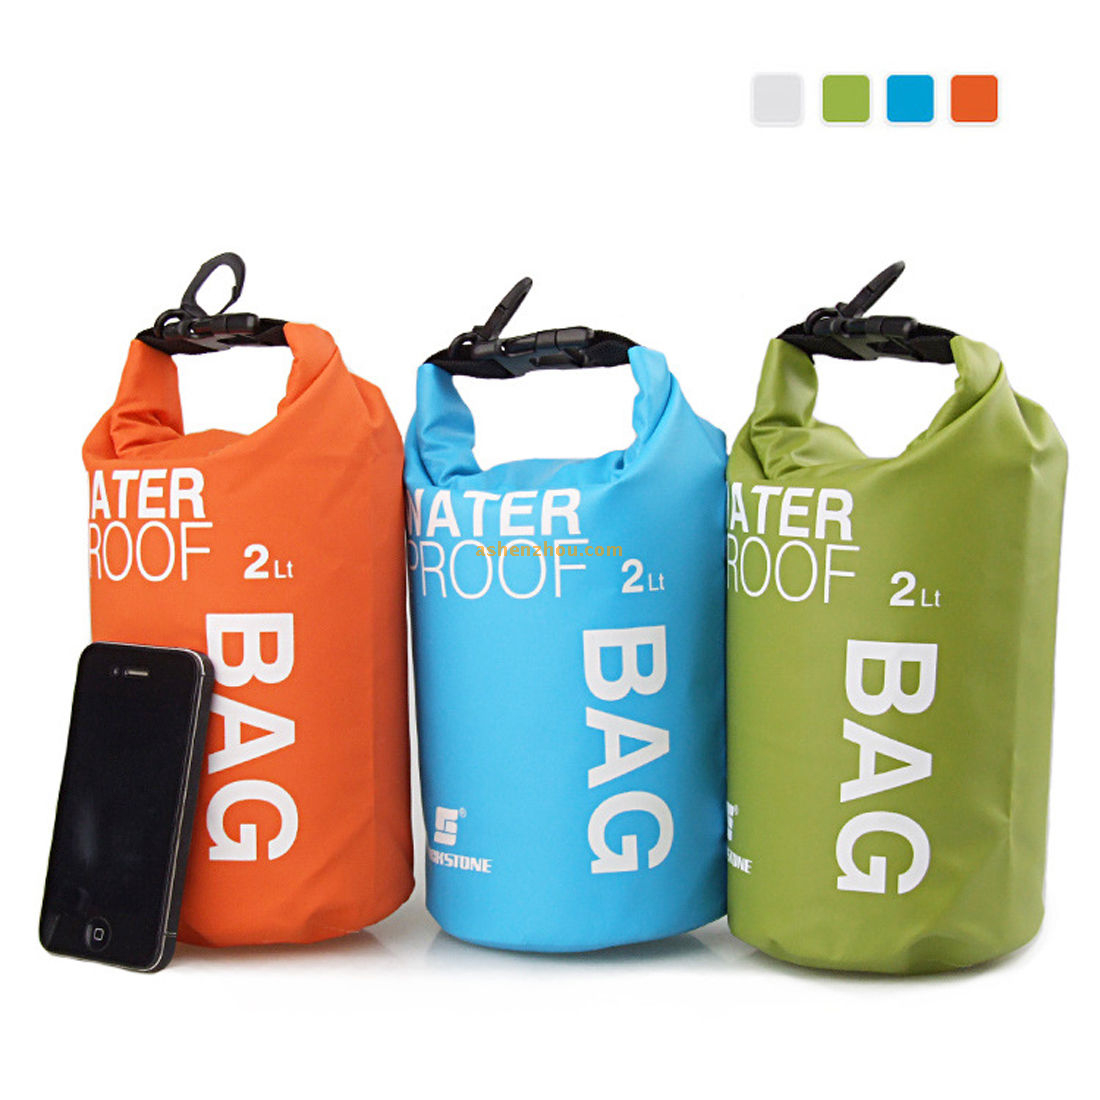 Roll top waterproof floating duffle dry gear bag, waterproof dry bag with adjustable shoulder straps for boating, kayaking, fishing